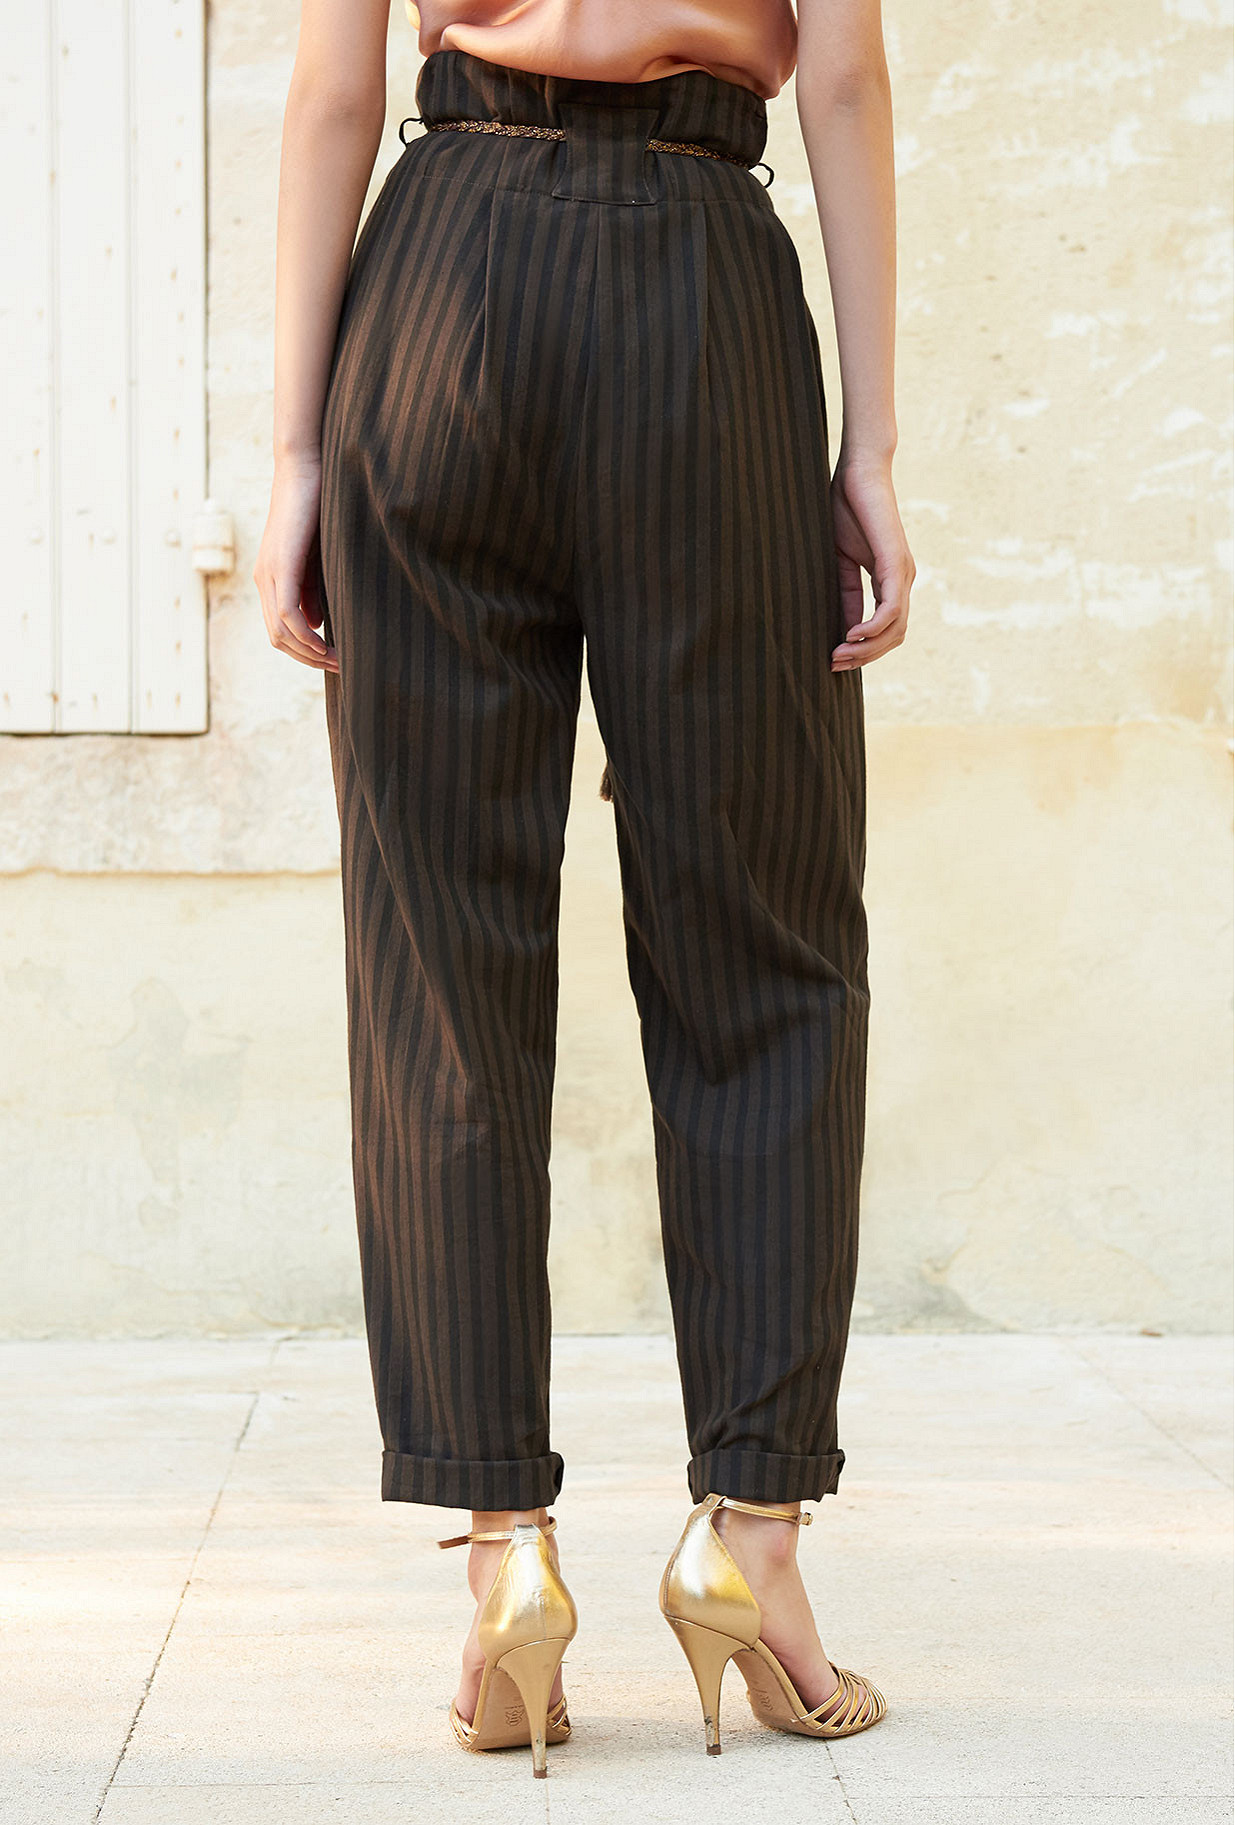 Pant Kate Mes Demoiselles color Black